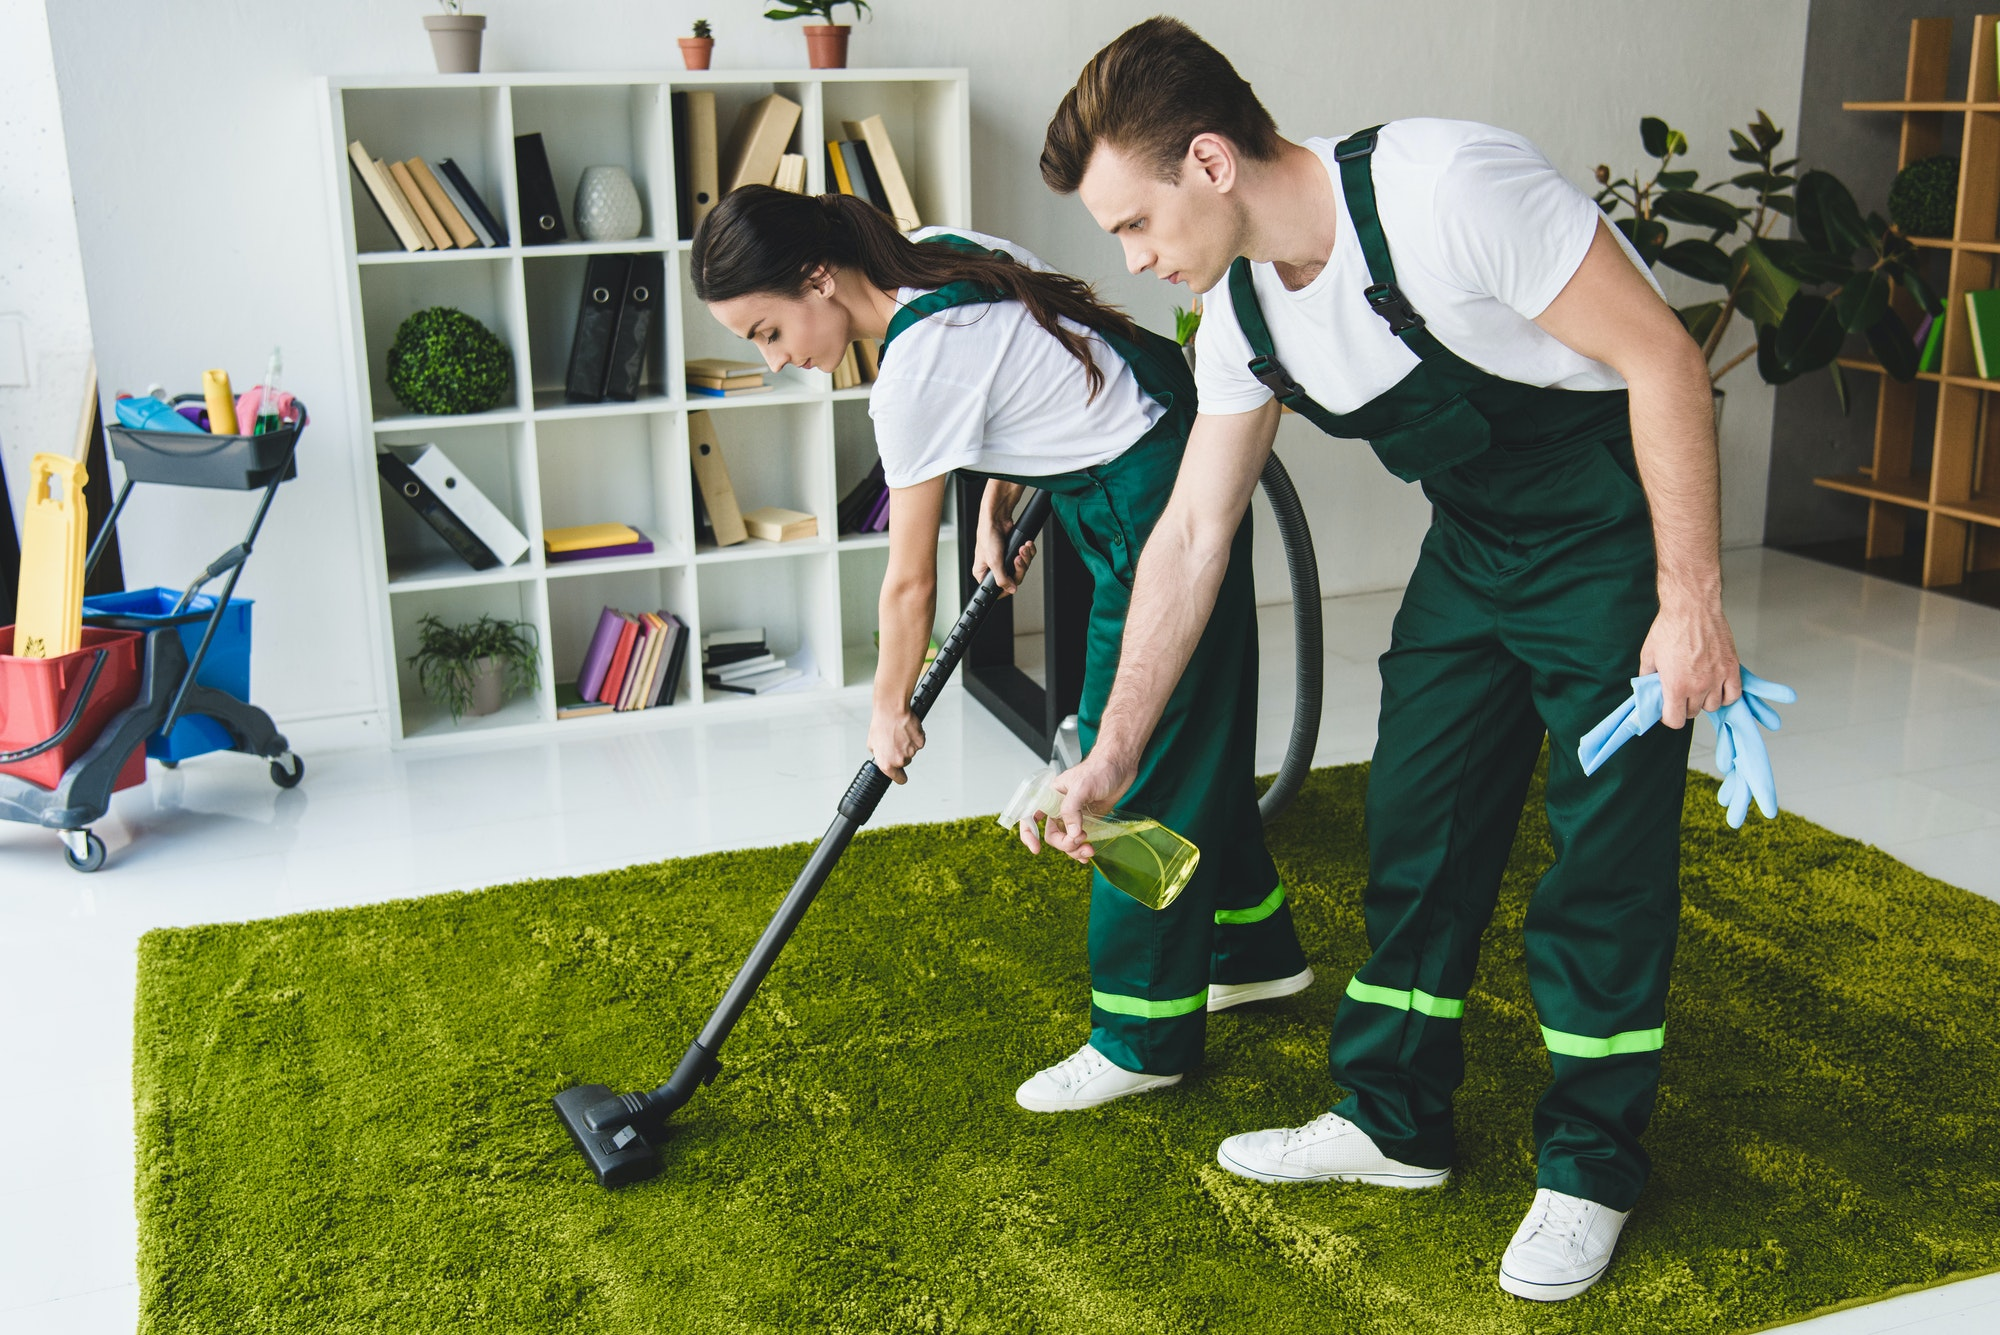 young cleaning company workers cleaning carpet with vacuum cleaner and detergent spray